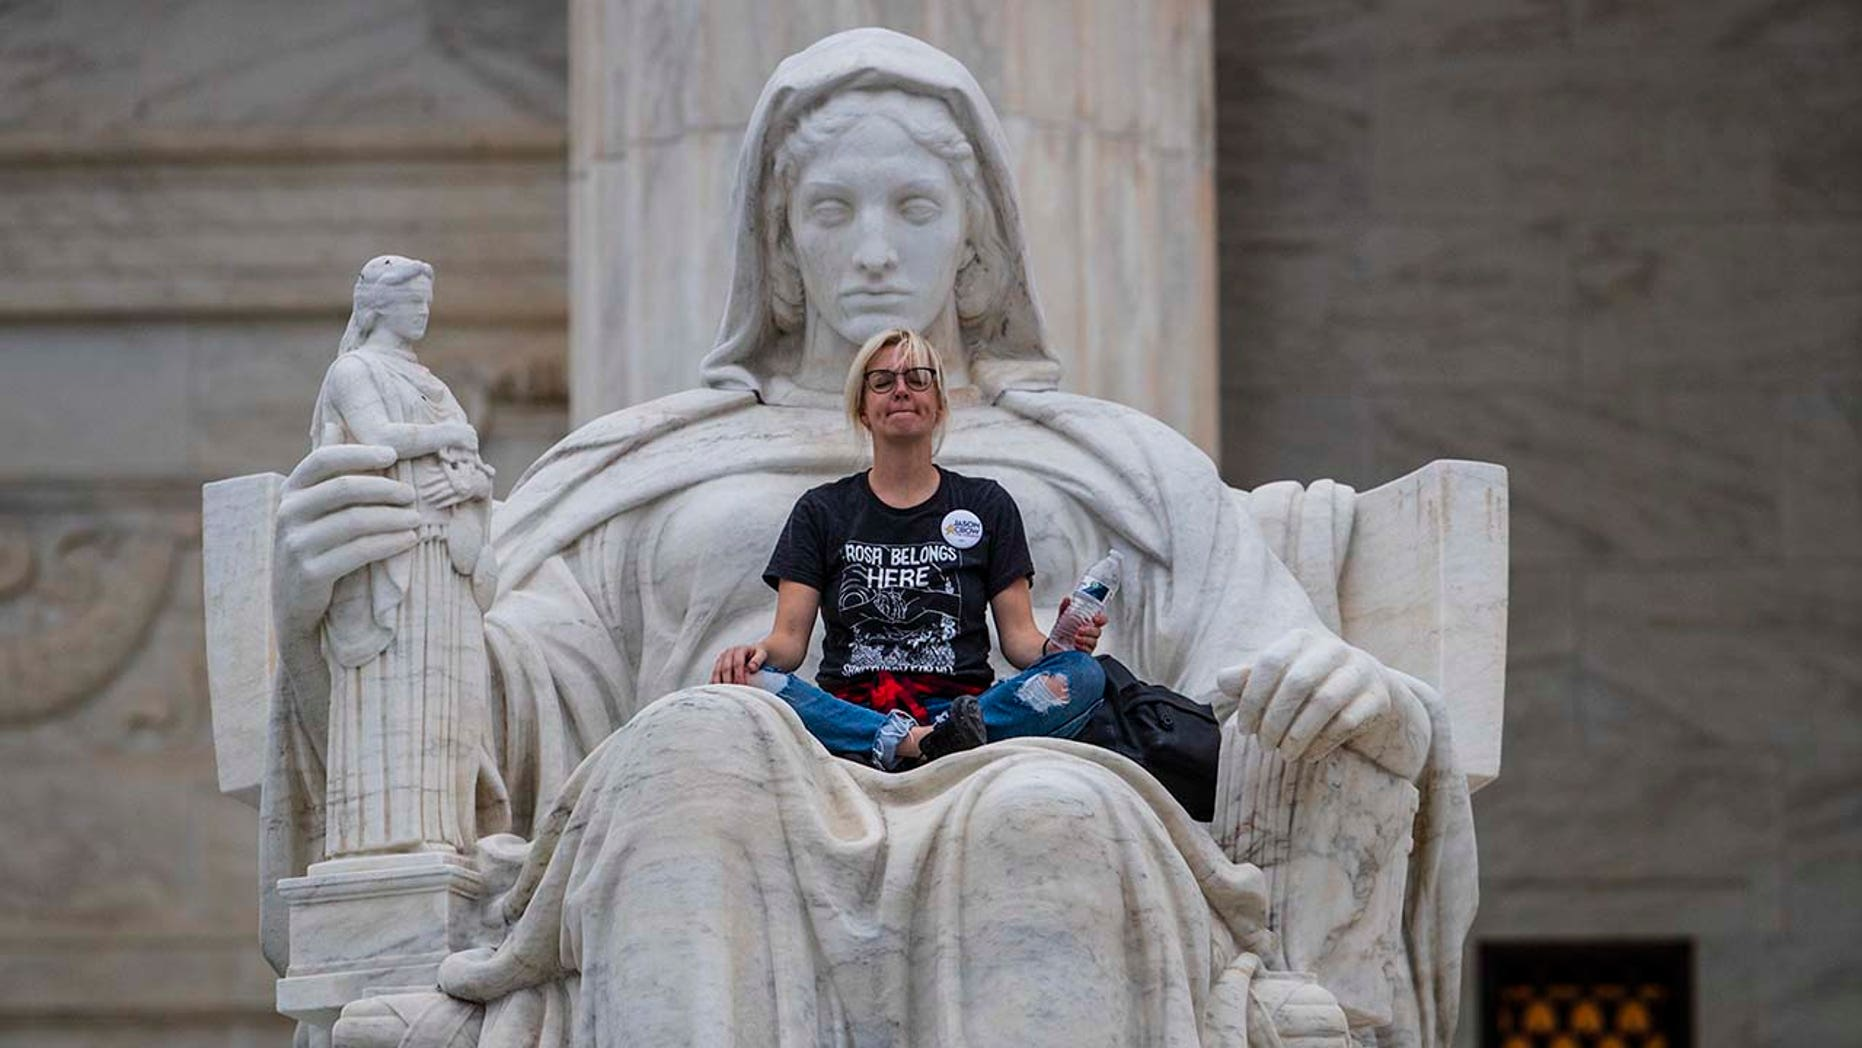 Jessica Campbell-Swanson, an activist from Denver, sits in the lap of a sculpture known as the Statue of Contemplation of Justice on the steps of the Supreme Court Building where she and others protested the confirmation of Brett Kavanaugh as the high court's newest justice, in Washington, Saturday, Oct. 6, 2018. (AP Photo/J. Scott Applewhite)